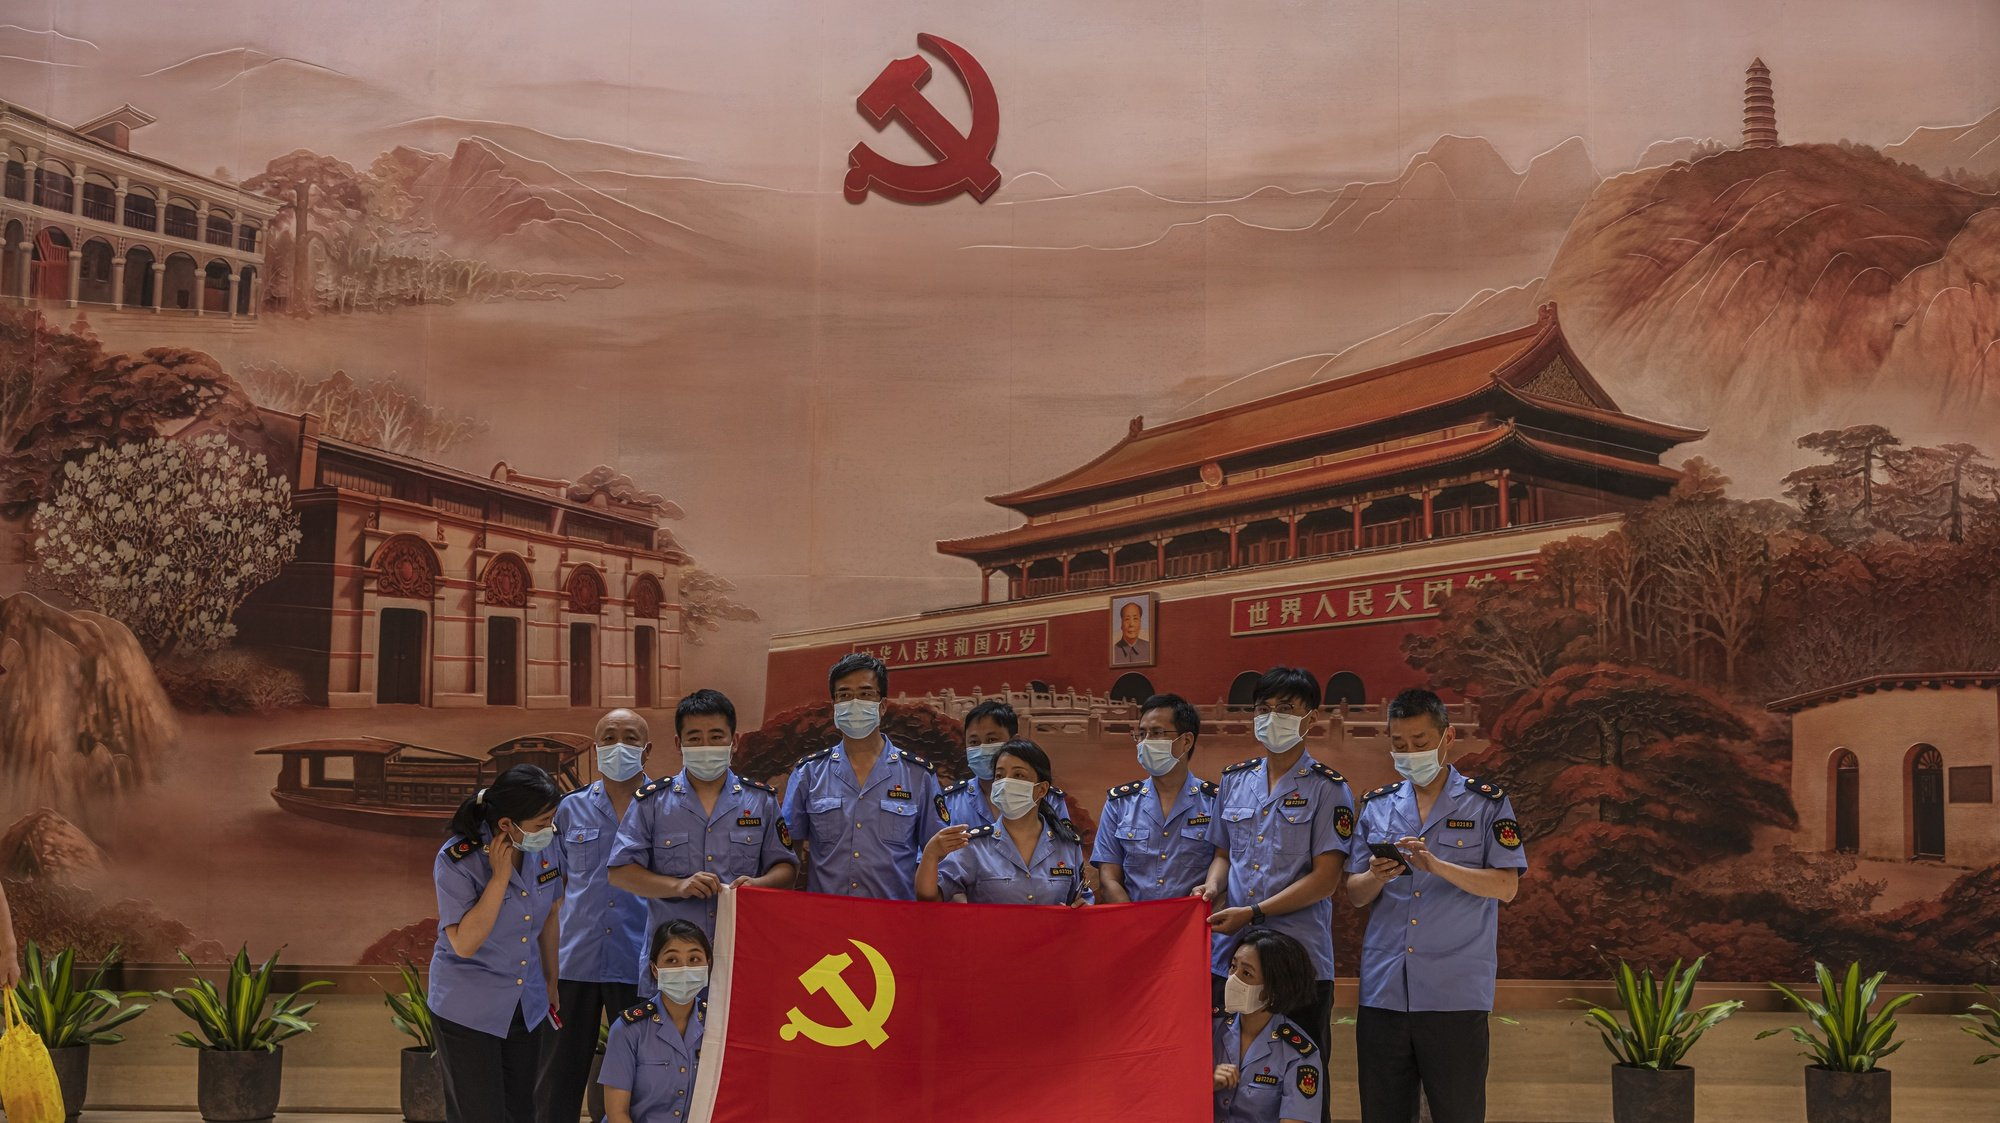 epa09314821 Members of the police pose in the Memorial of the 1st National Congress of the CPC (Chinese Communist Party), in Shanghai, China, 01 July 2021. China celebrates on 01 July the 100th anniversary of the founding of the ruling Chinese Communist Party.  EPA/ALEX PLAVEVSKI